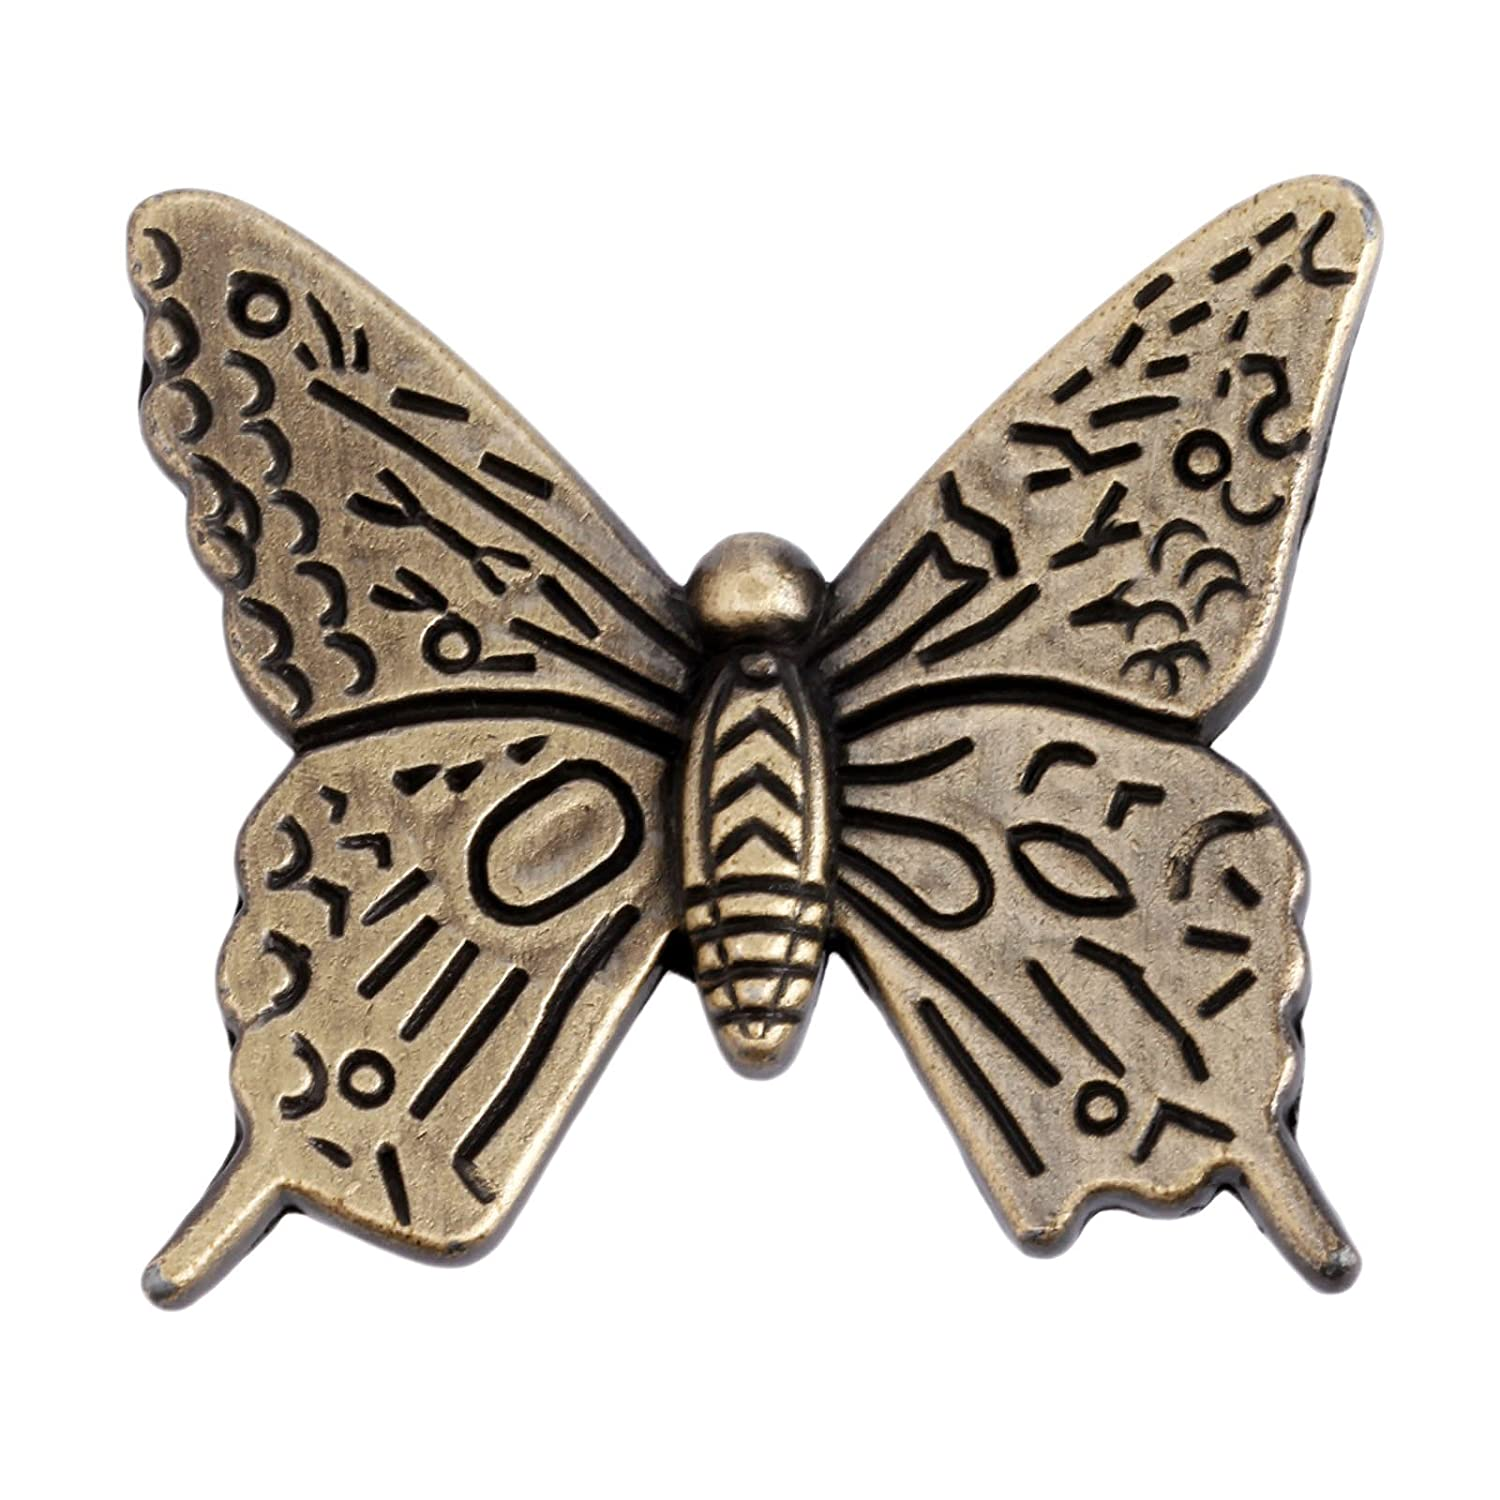 5Pcs Vintage Butterfly Cupboard Door Knobs Cabinet Handles Furniture Chest Drawer Pull Antique Bronze (1.69